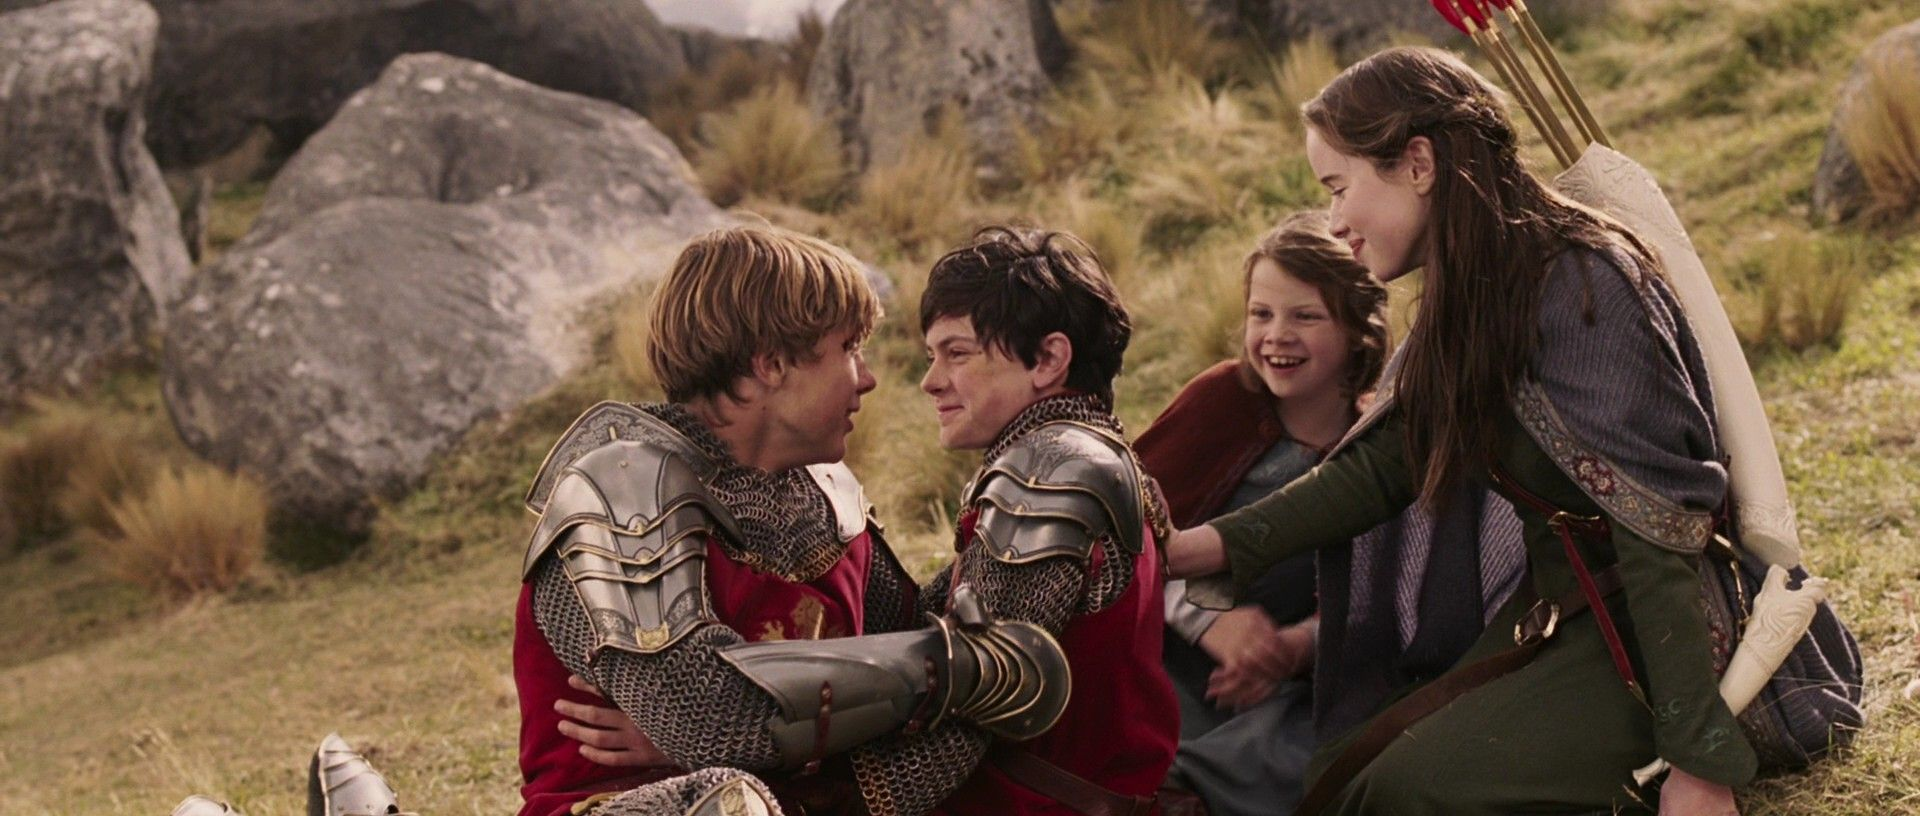 12 DAYS OF CHRISTMAS REVIEW: THE CHRONICLES OF NARNIA: THE ...